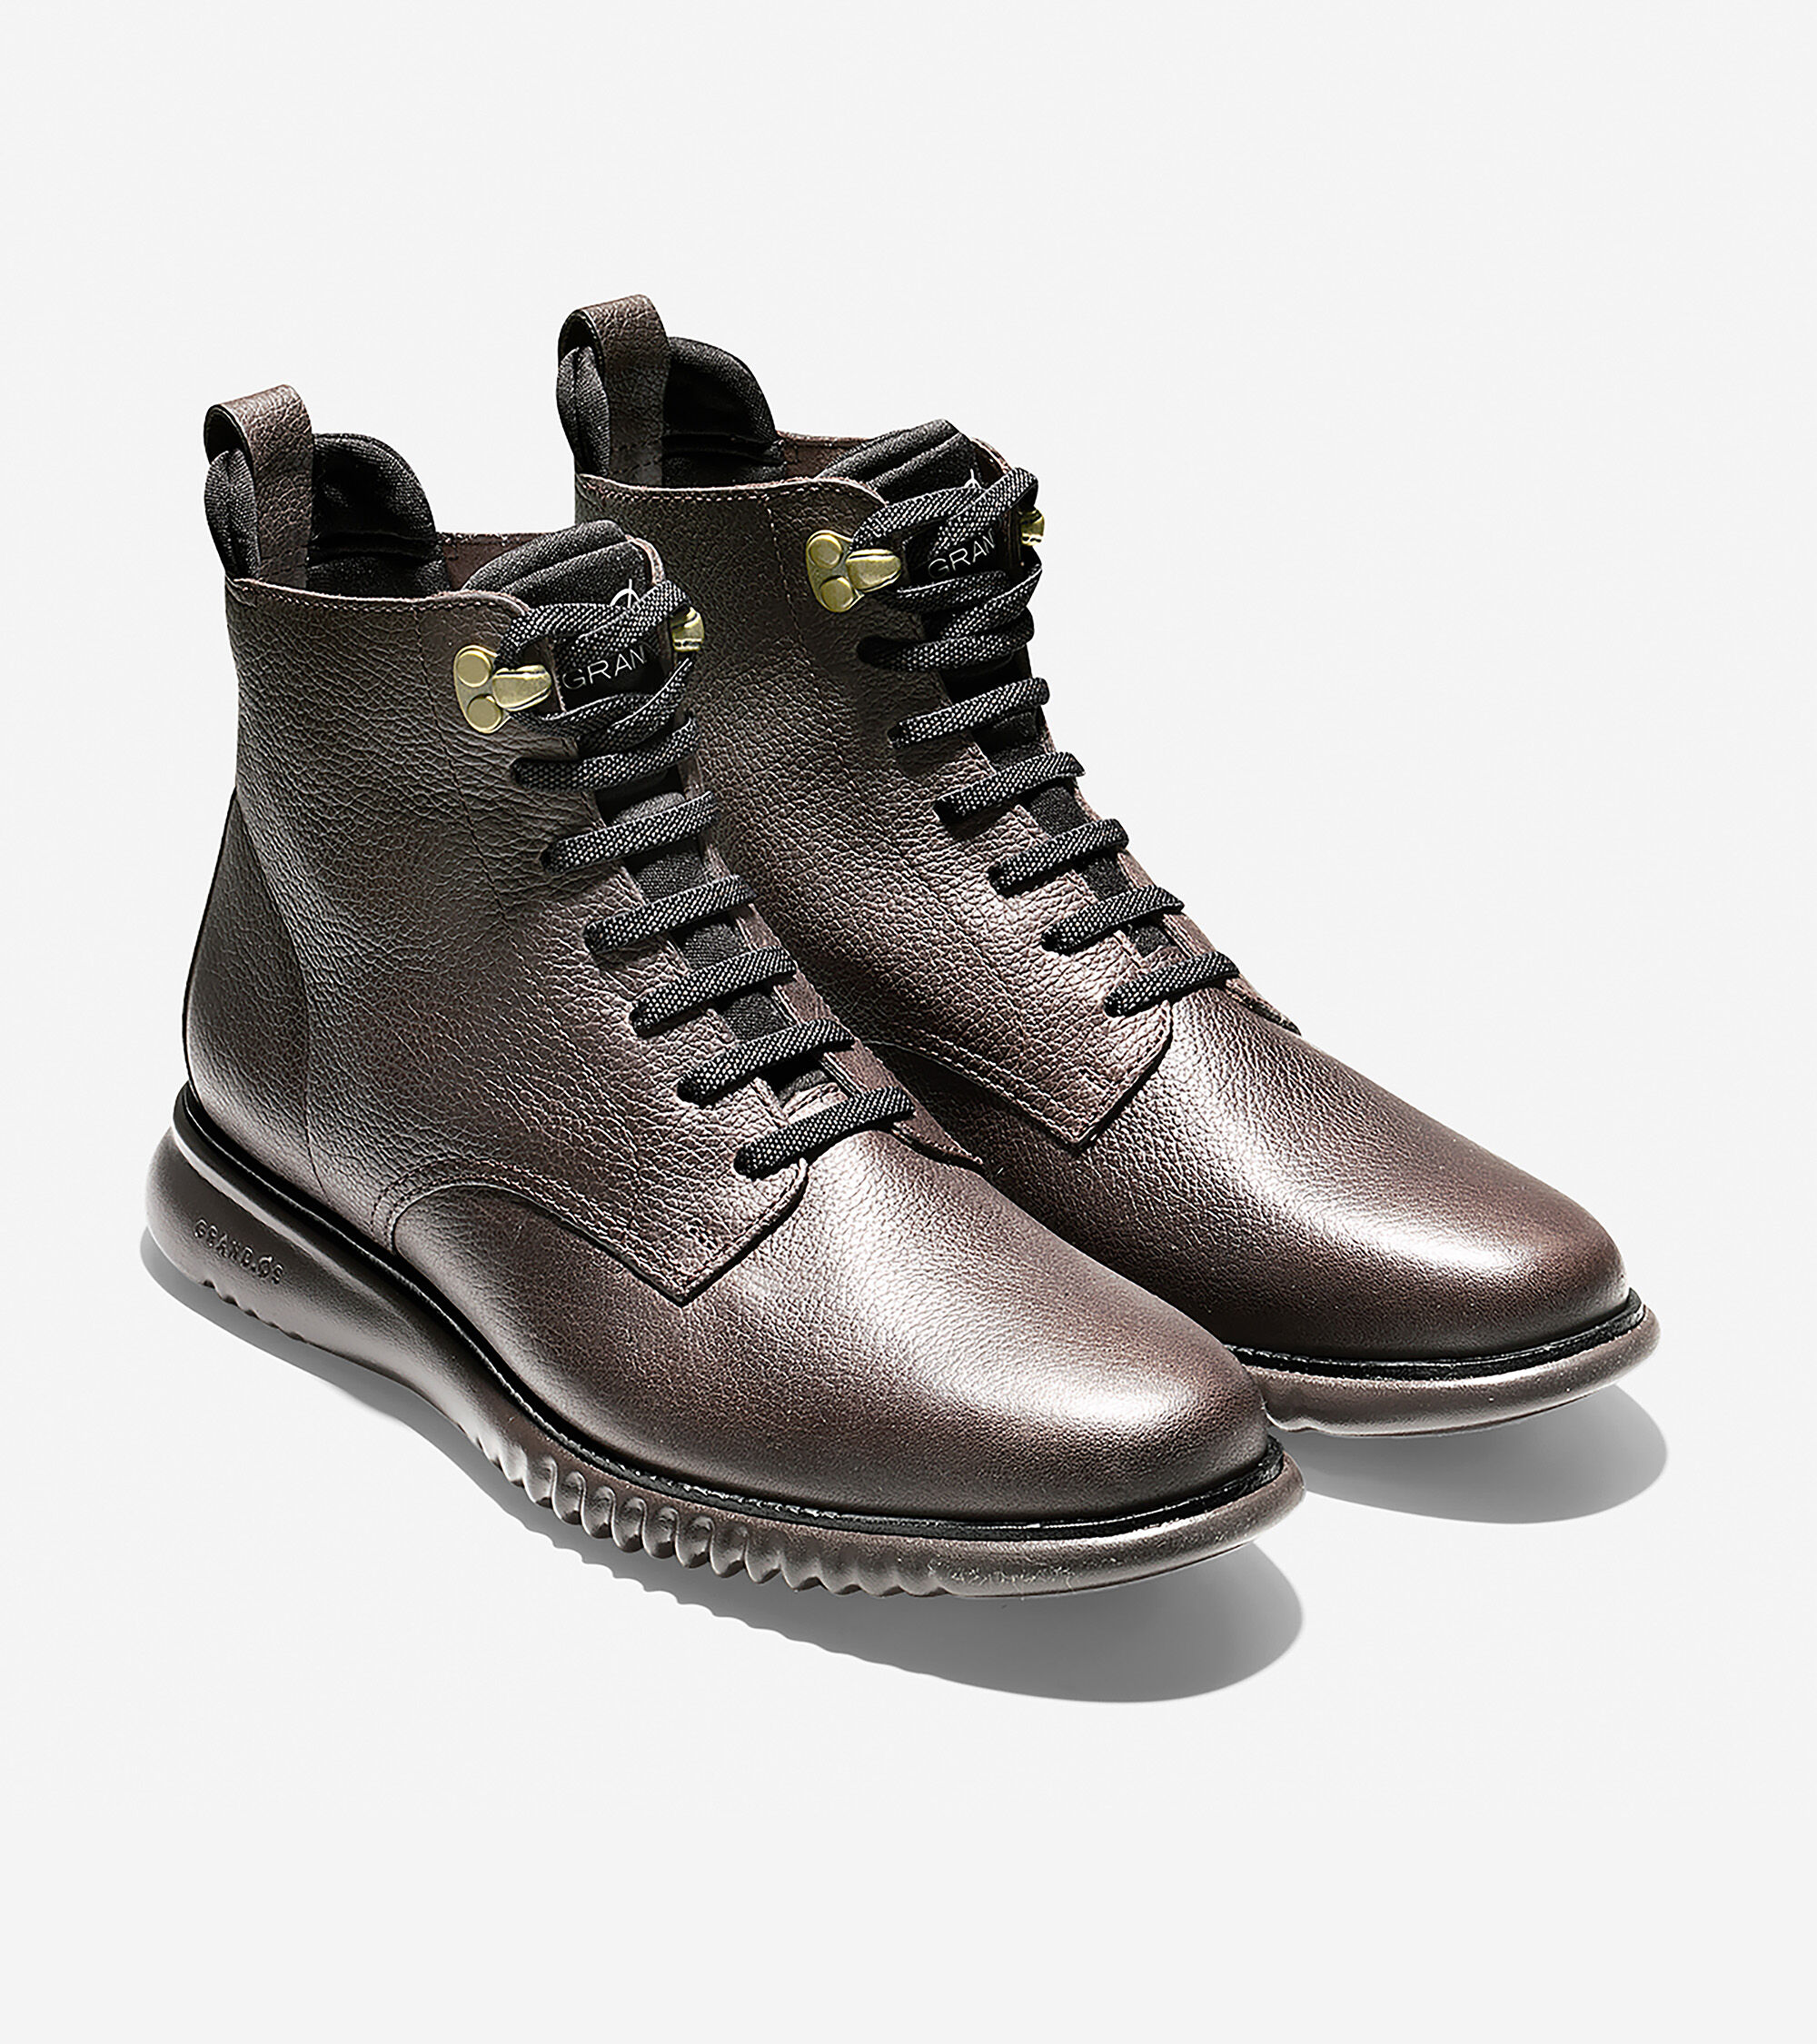 118c64f9cc8 ZERØGRAND Waterproof City Boot · Men s 2.ZERØGRAND Waterproof City Boot ...